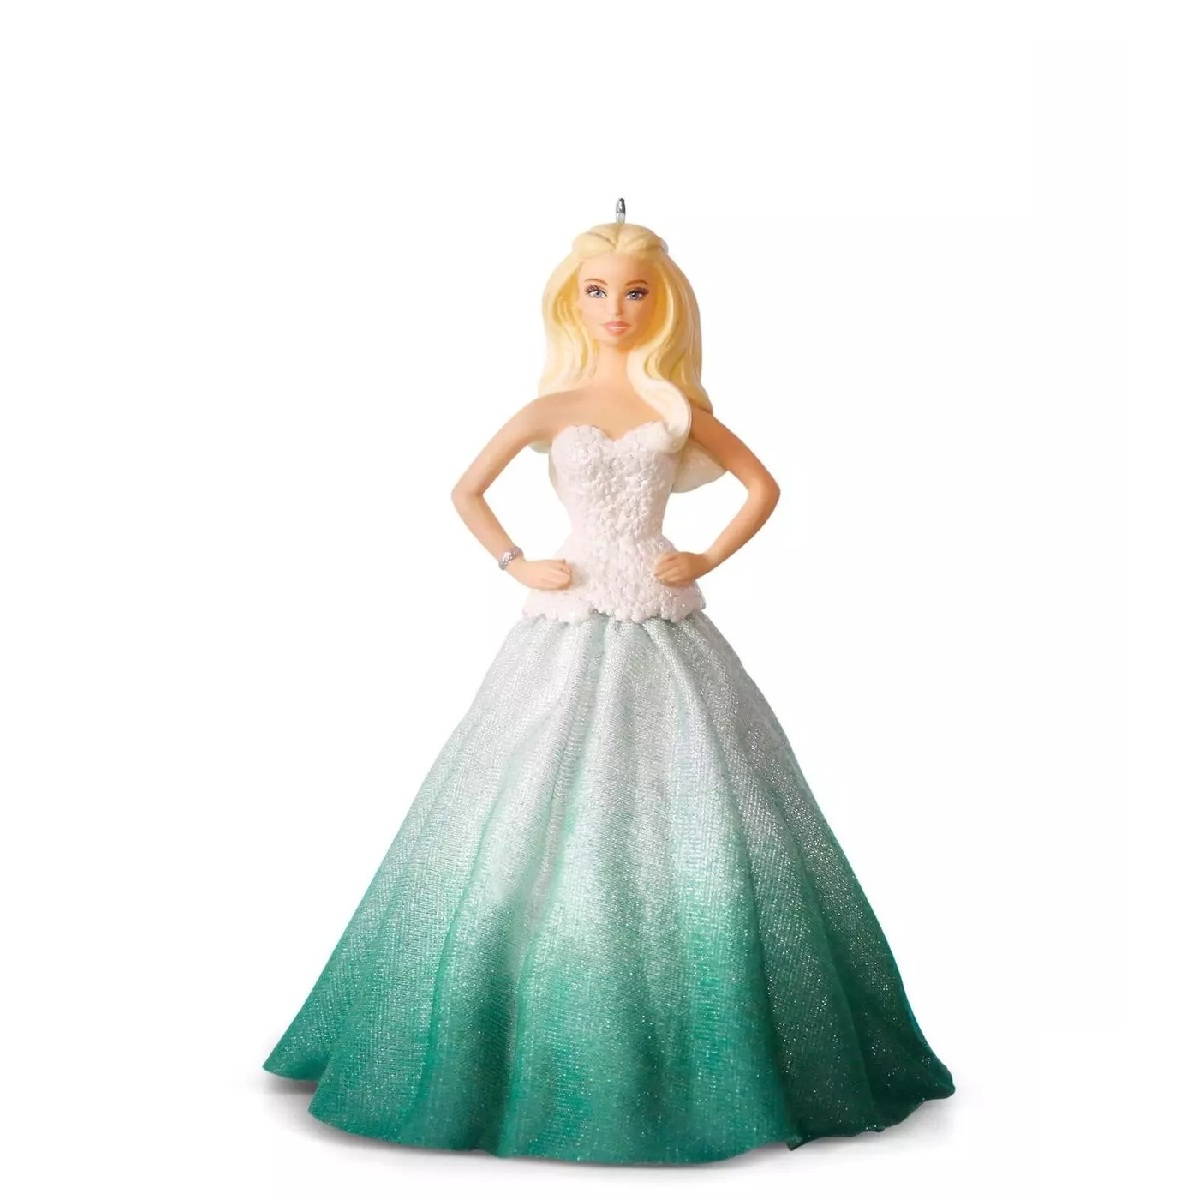 Hallmark Holiday Barbie Ornament